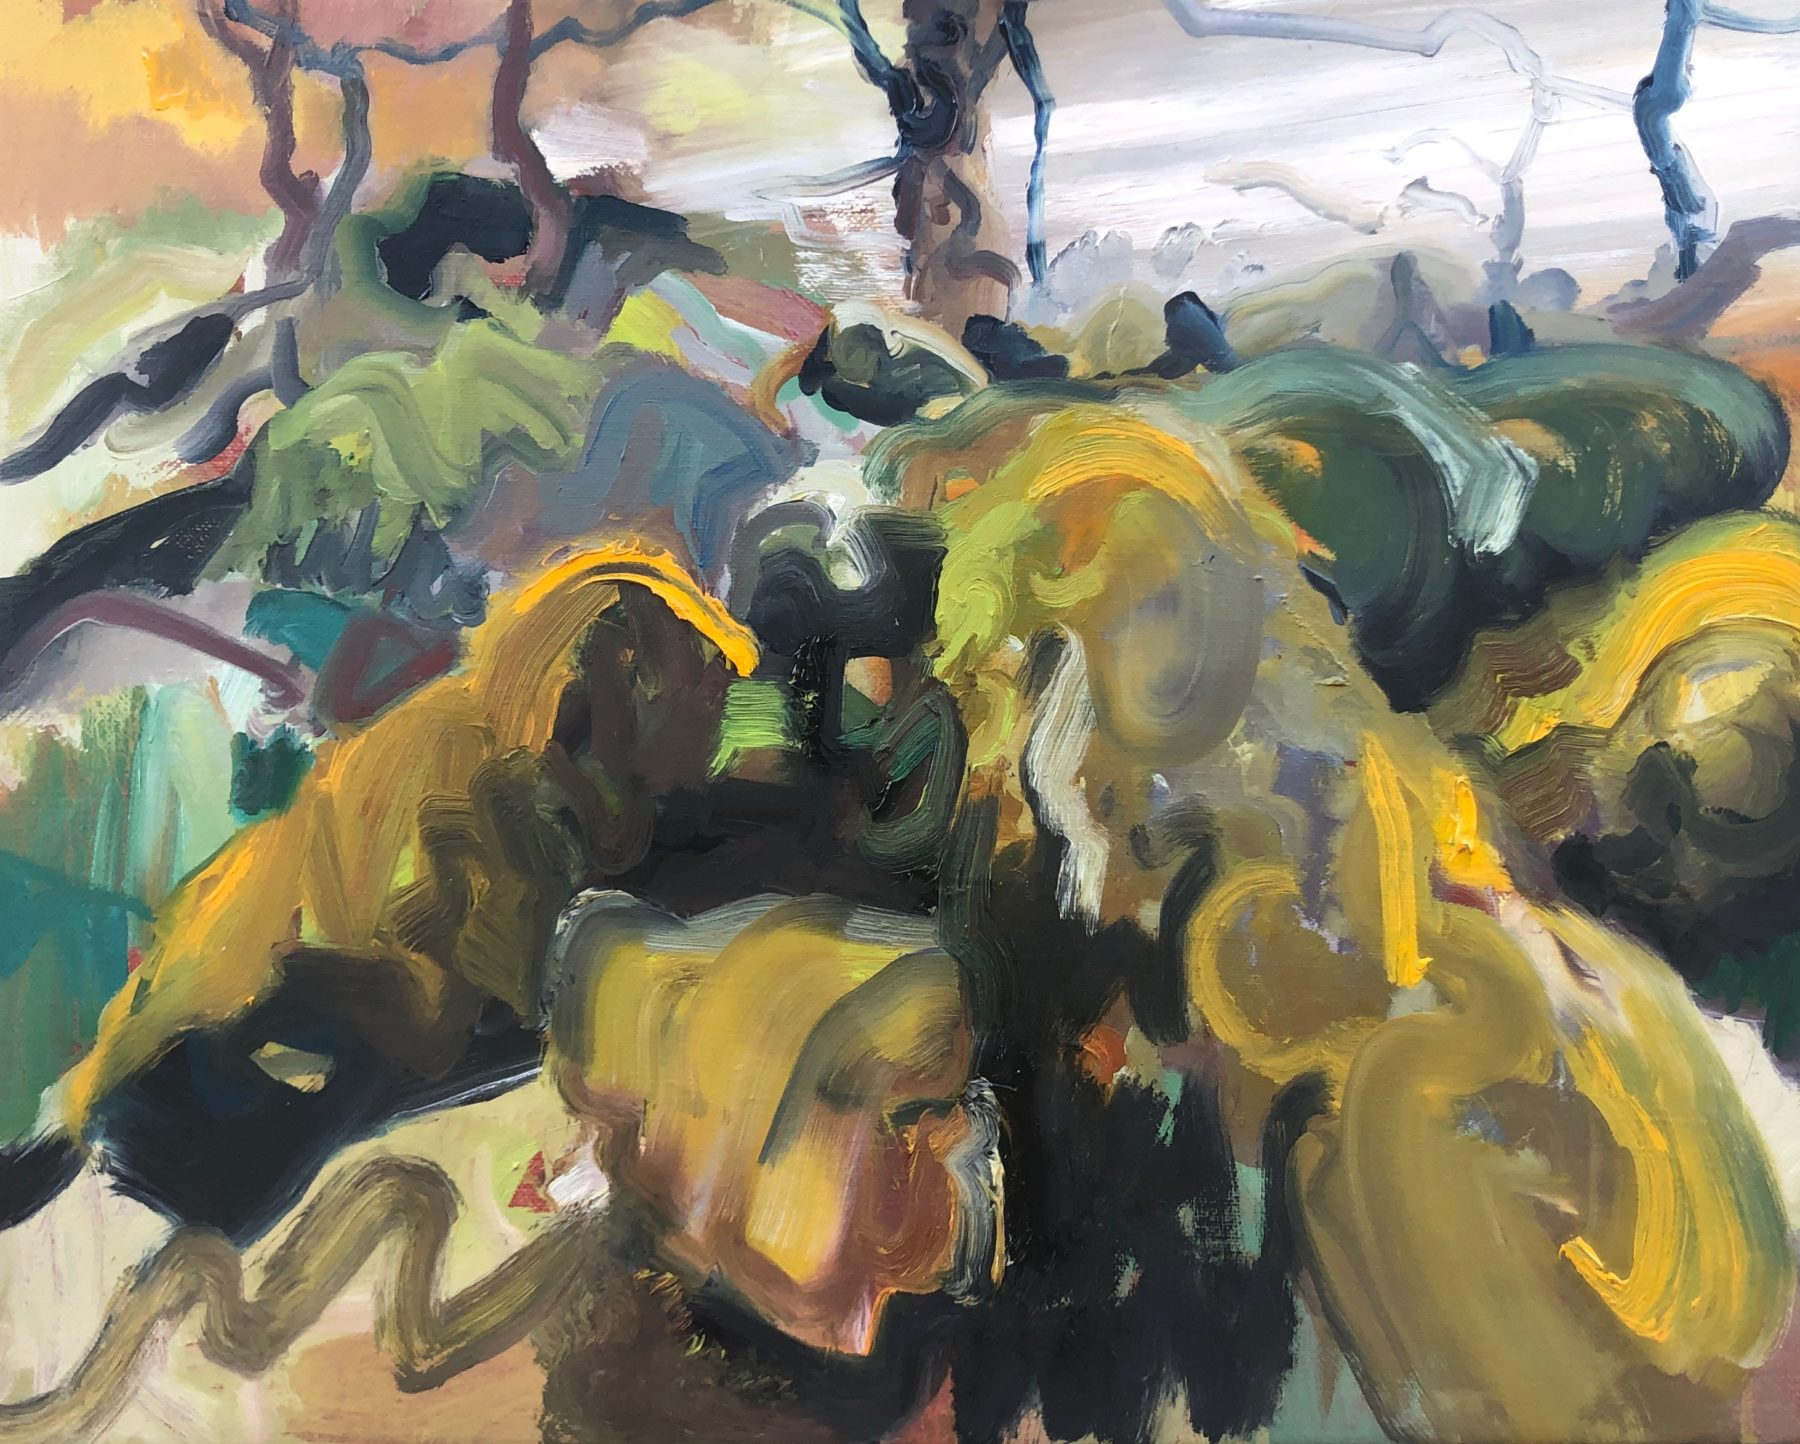 Bold and expressive brush marks of yellow, green, black and blue overlap and interlace to create an abstract picture of a dense forest.